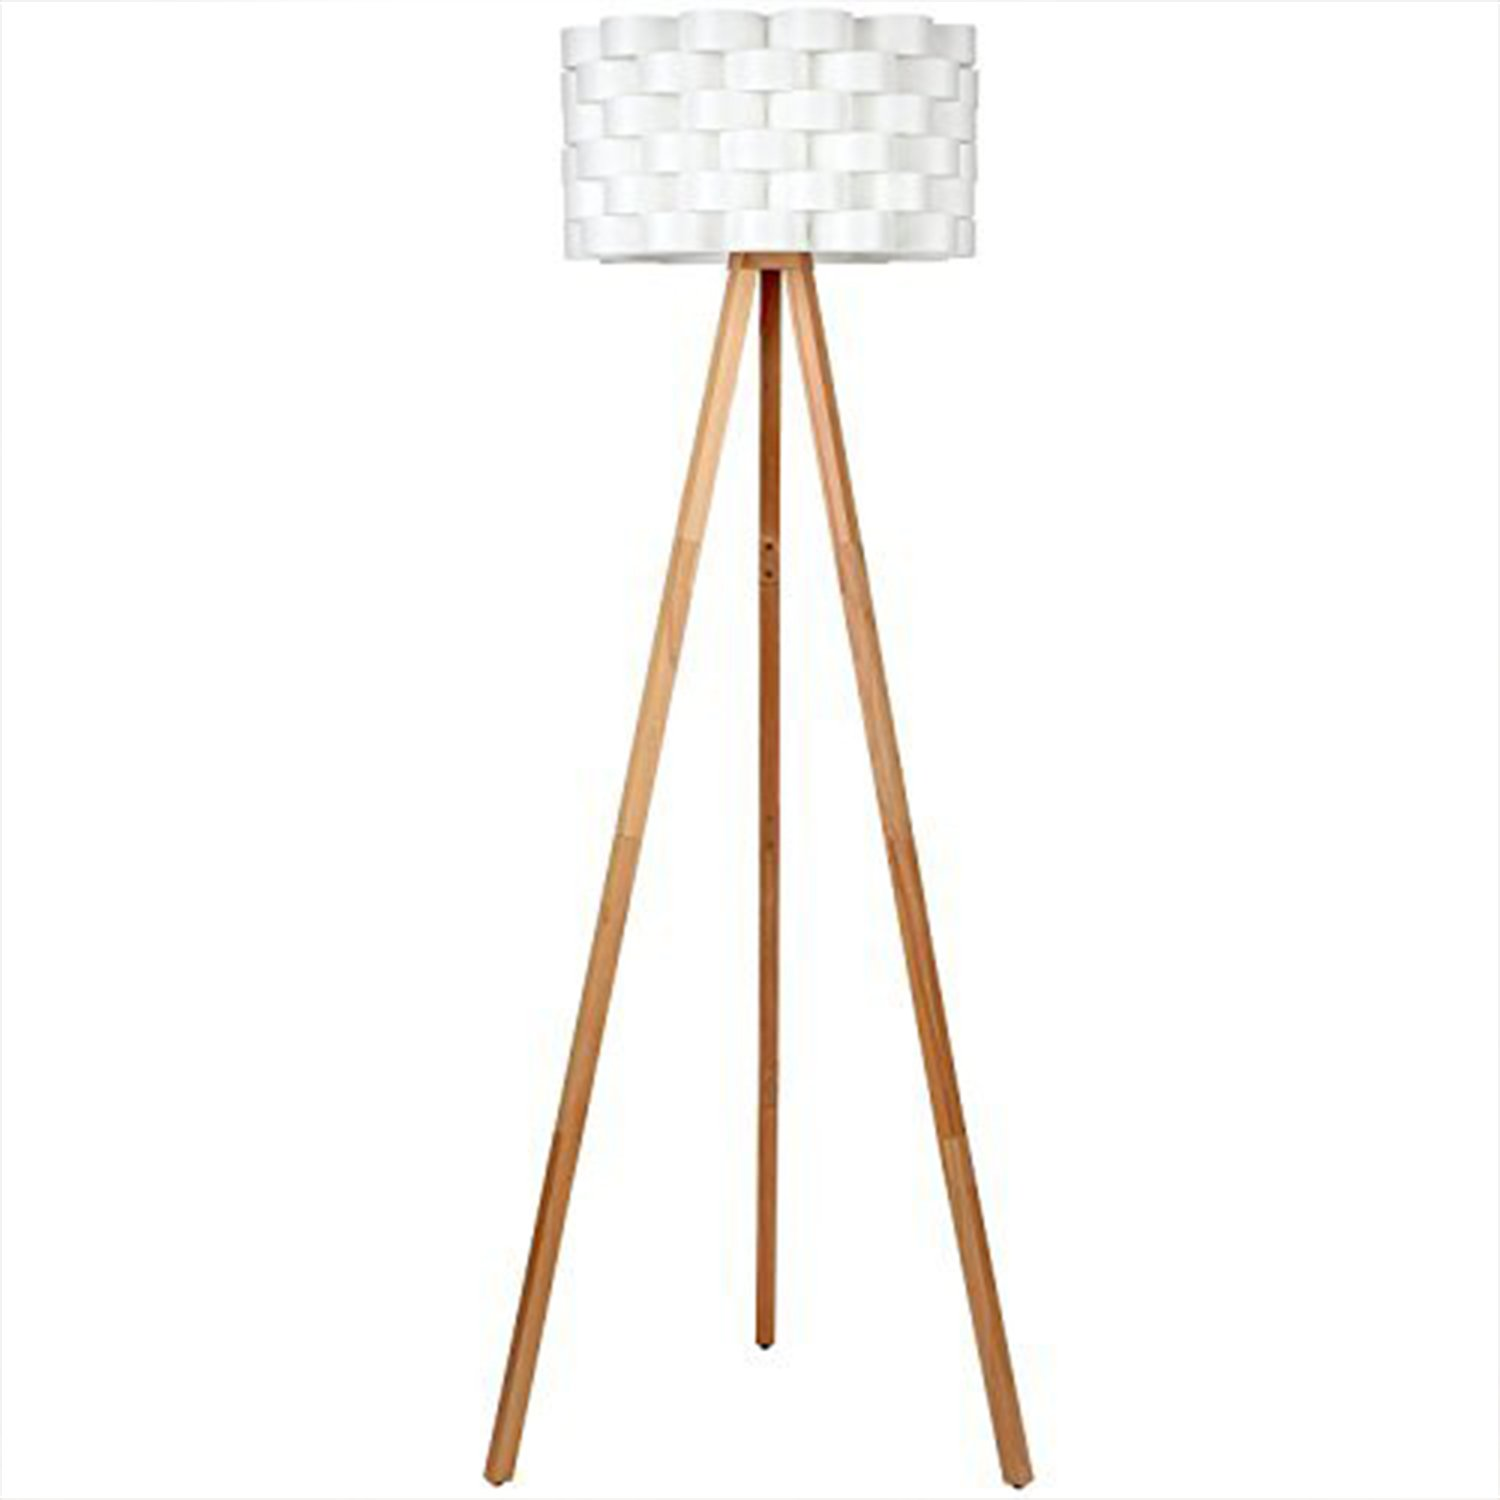 five where light home of designs living to colorful decoration very lamp up task unique tripod flooring carpet fresh buy white full standing free floor large reading stand bulb cute template room google flower image lamps size elegant multi cheap best big bright